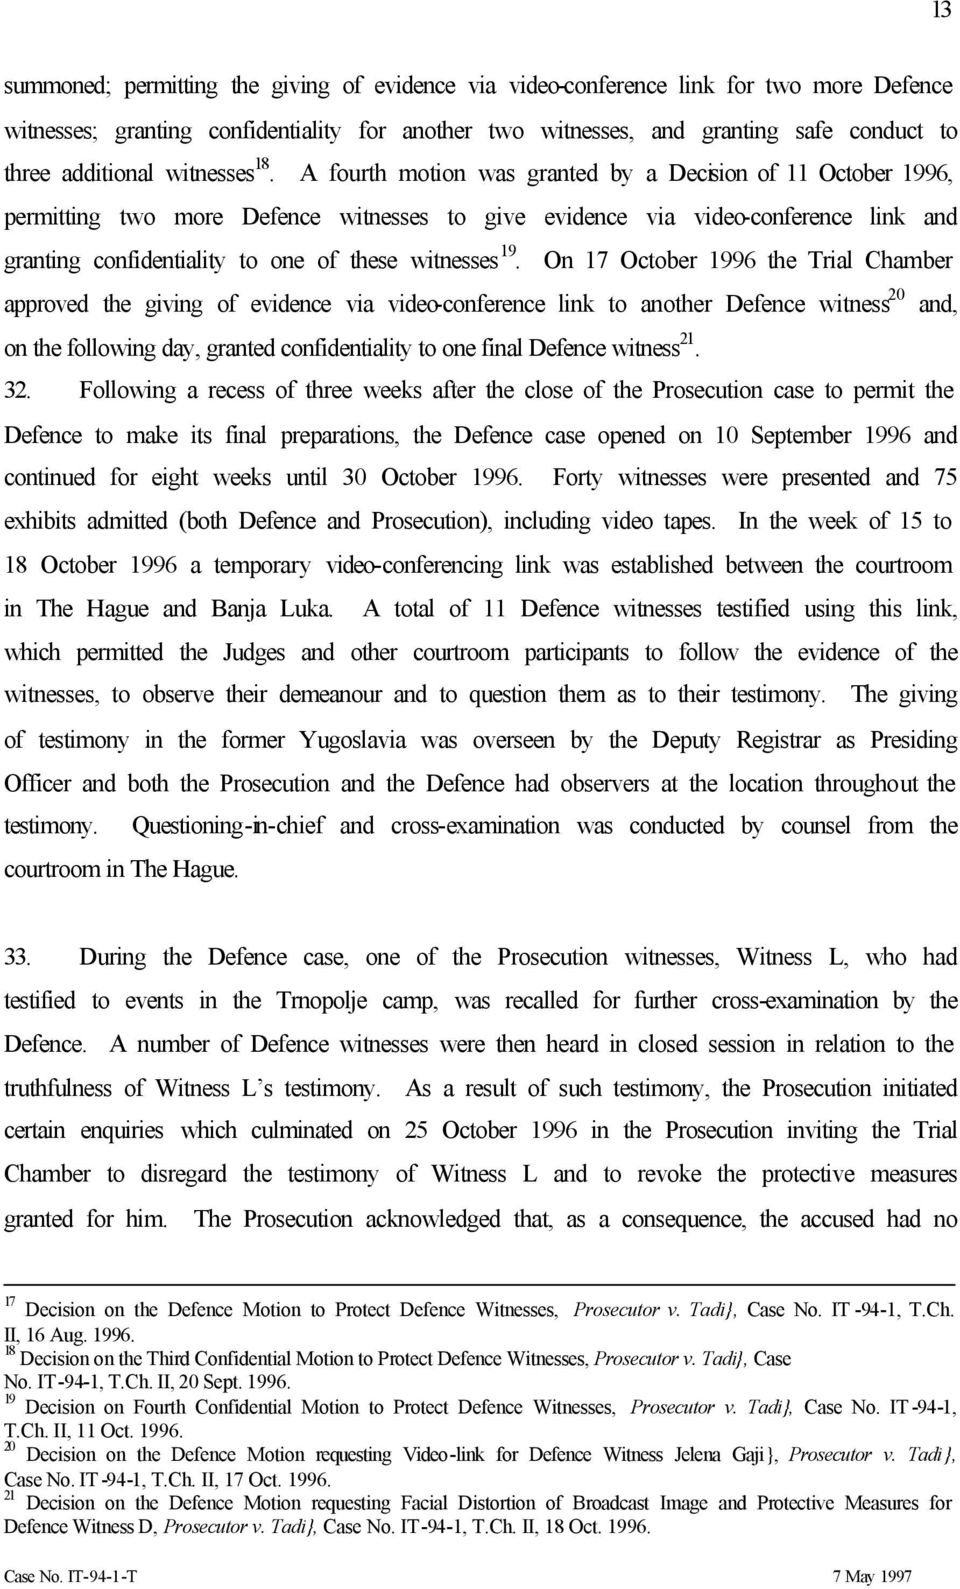 A fourth motion was granted by a Decision of 11 October 1996, permitting two more Defence witnesses to give evidence via video-conference link and granting confidentiality to one of these witnesses